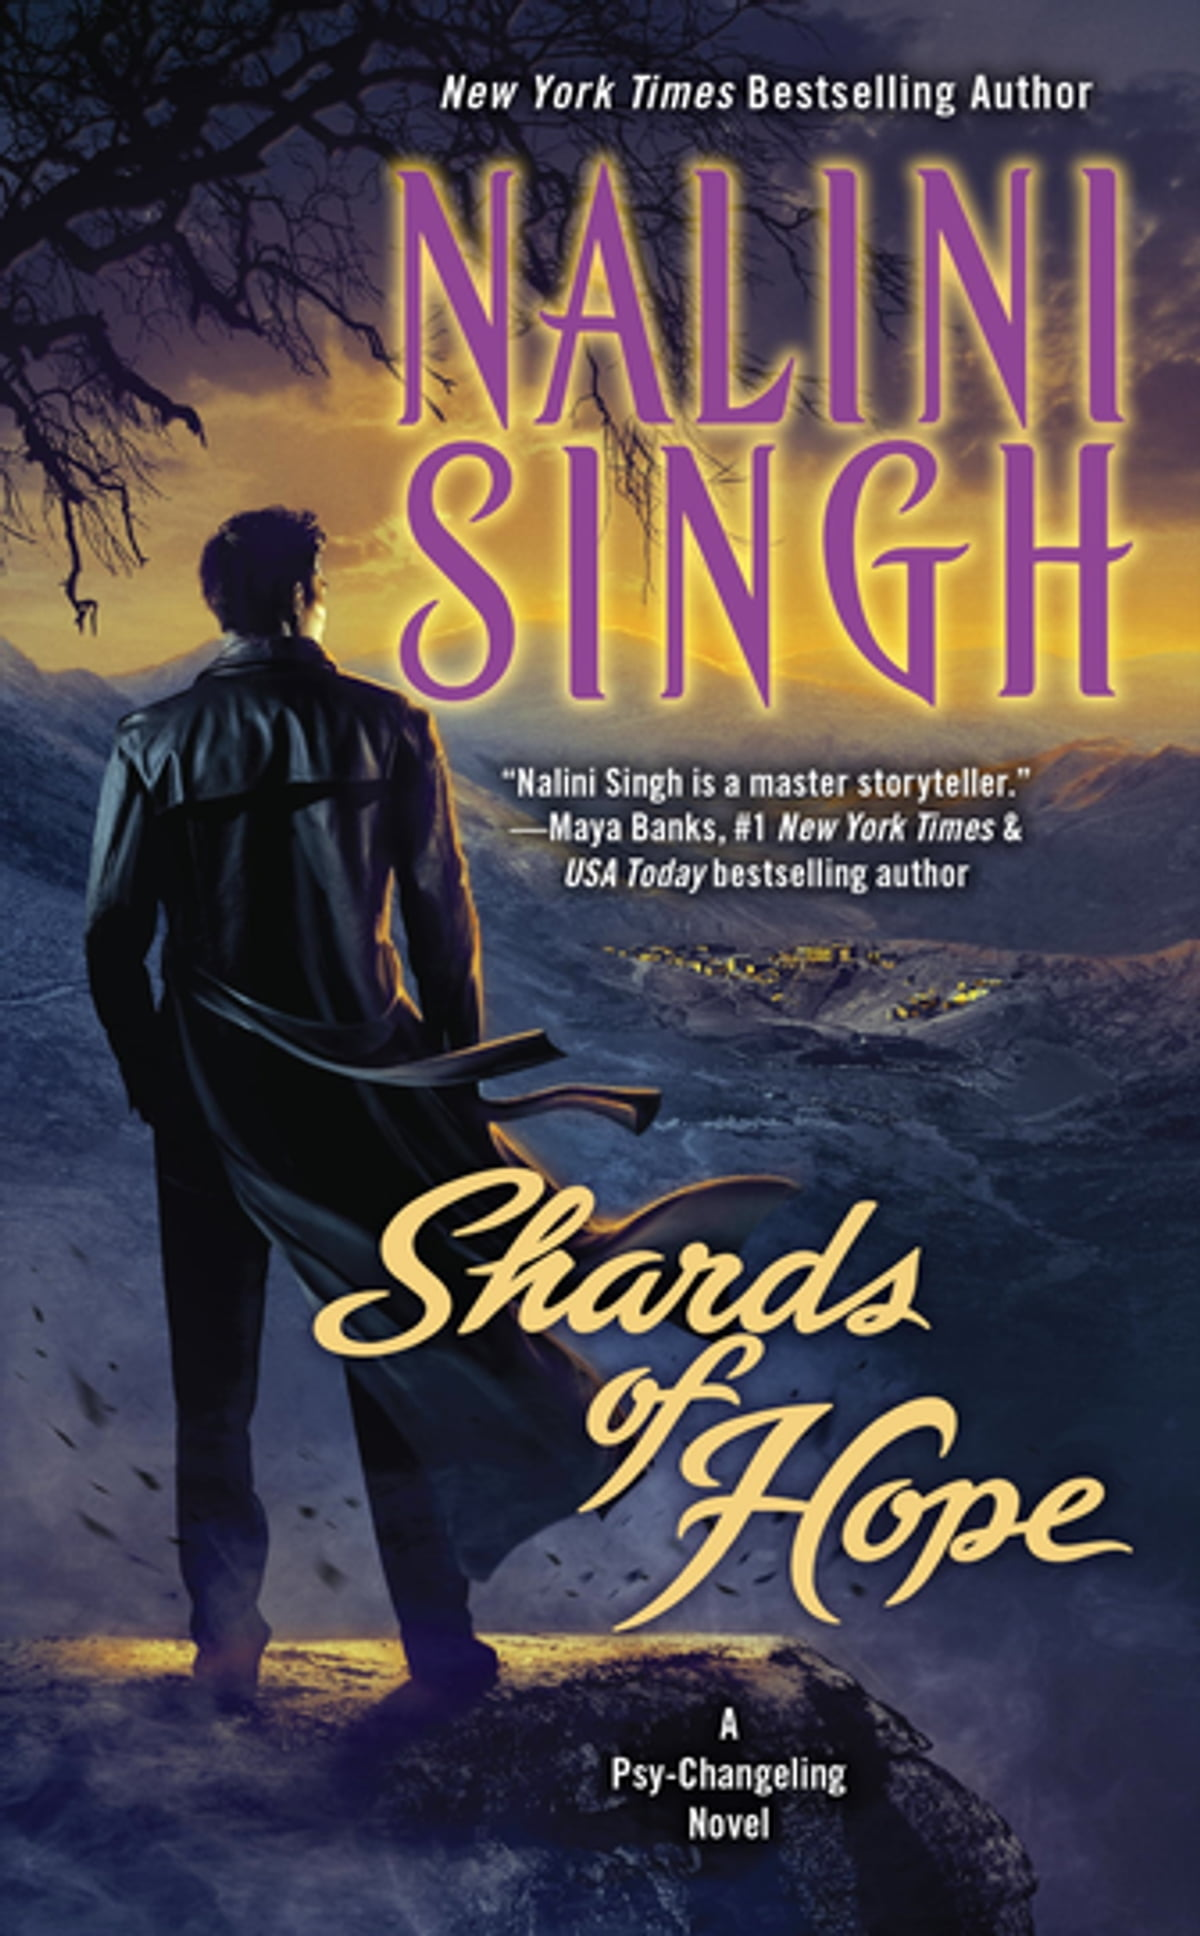 Shards Of Hope  A Psychangeling Novel Ebook By Nalini Singh